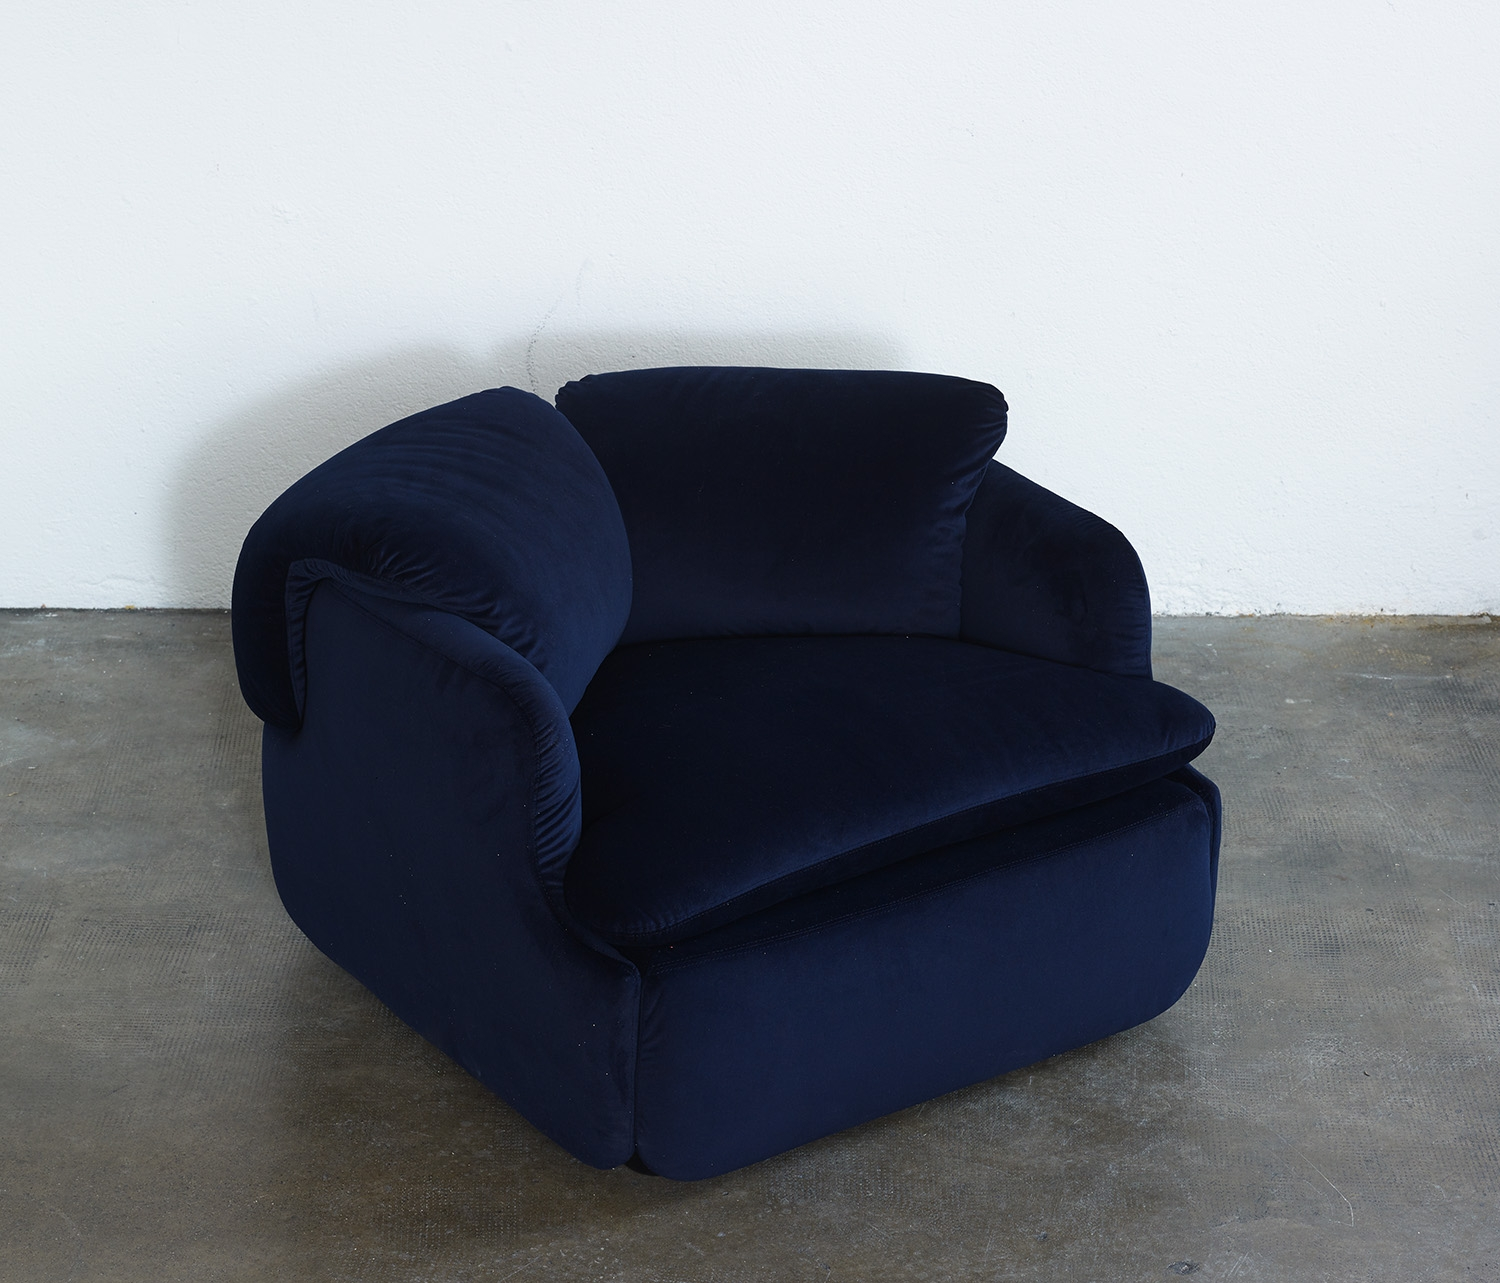 pair-of-confidential-lounge-chairs-by-alberto-rosselli-for-saporiti-1972-image-03